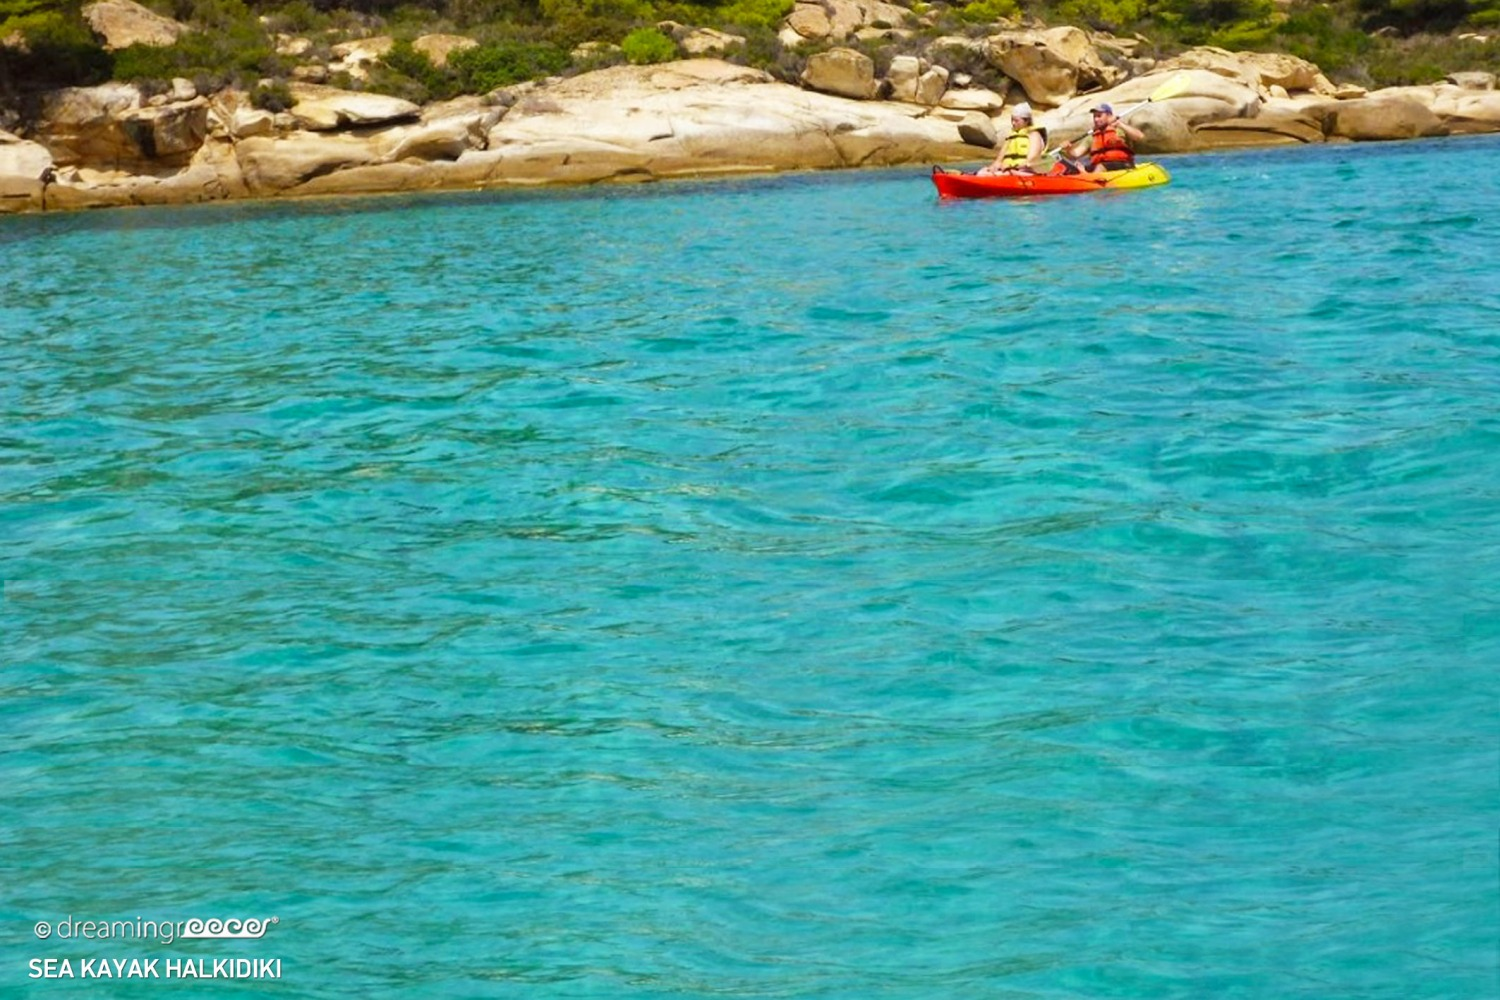 Sea Kayak Halkidiki. Kayaking in Greece.